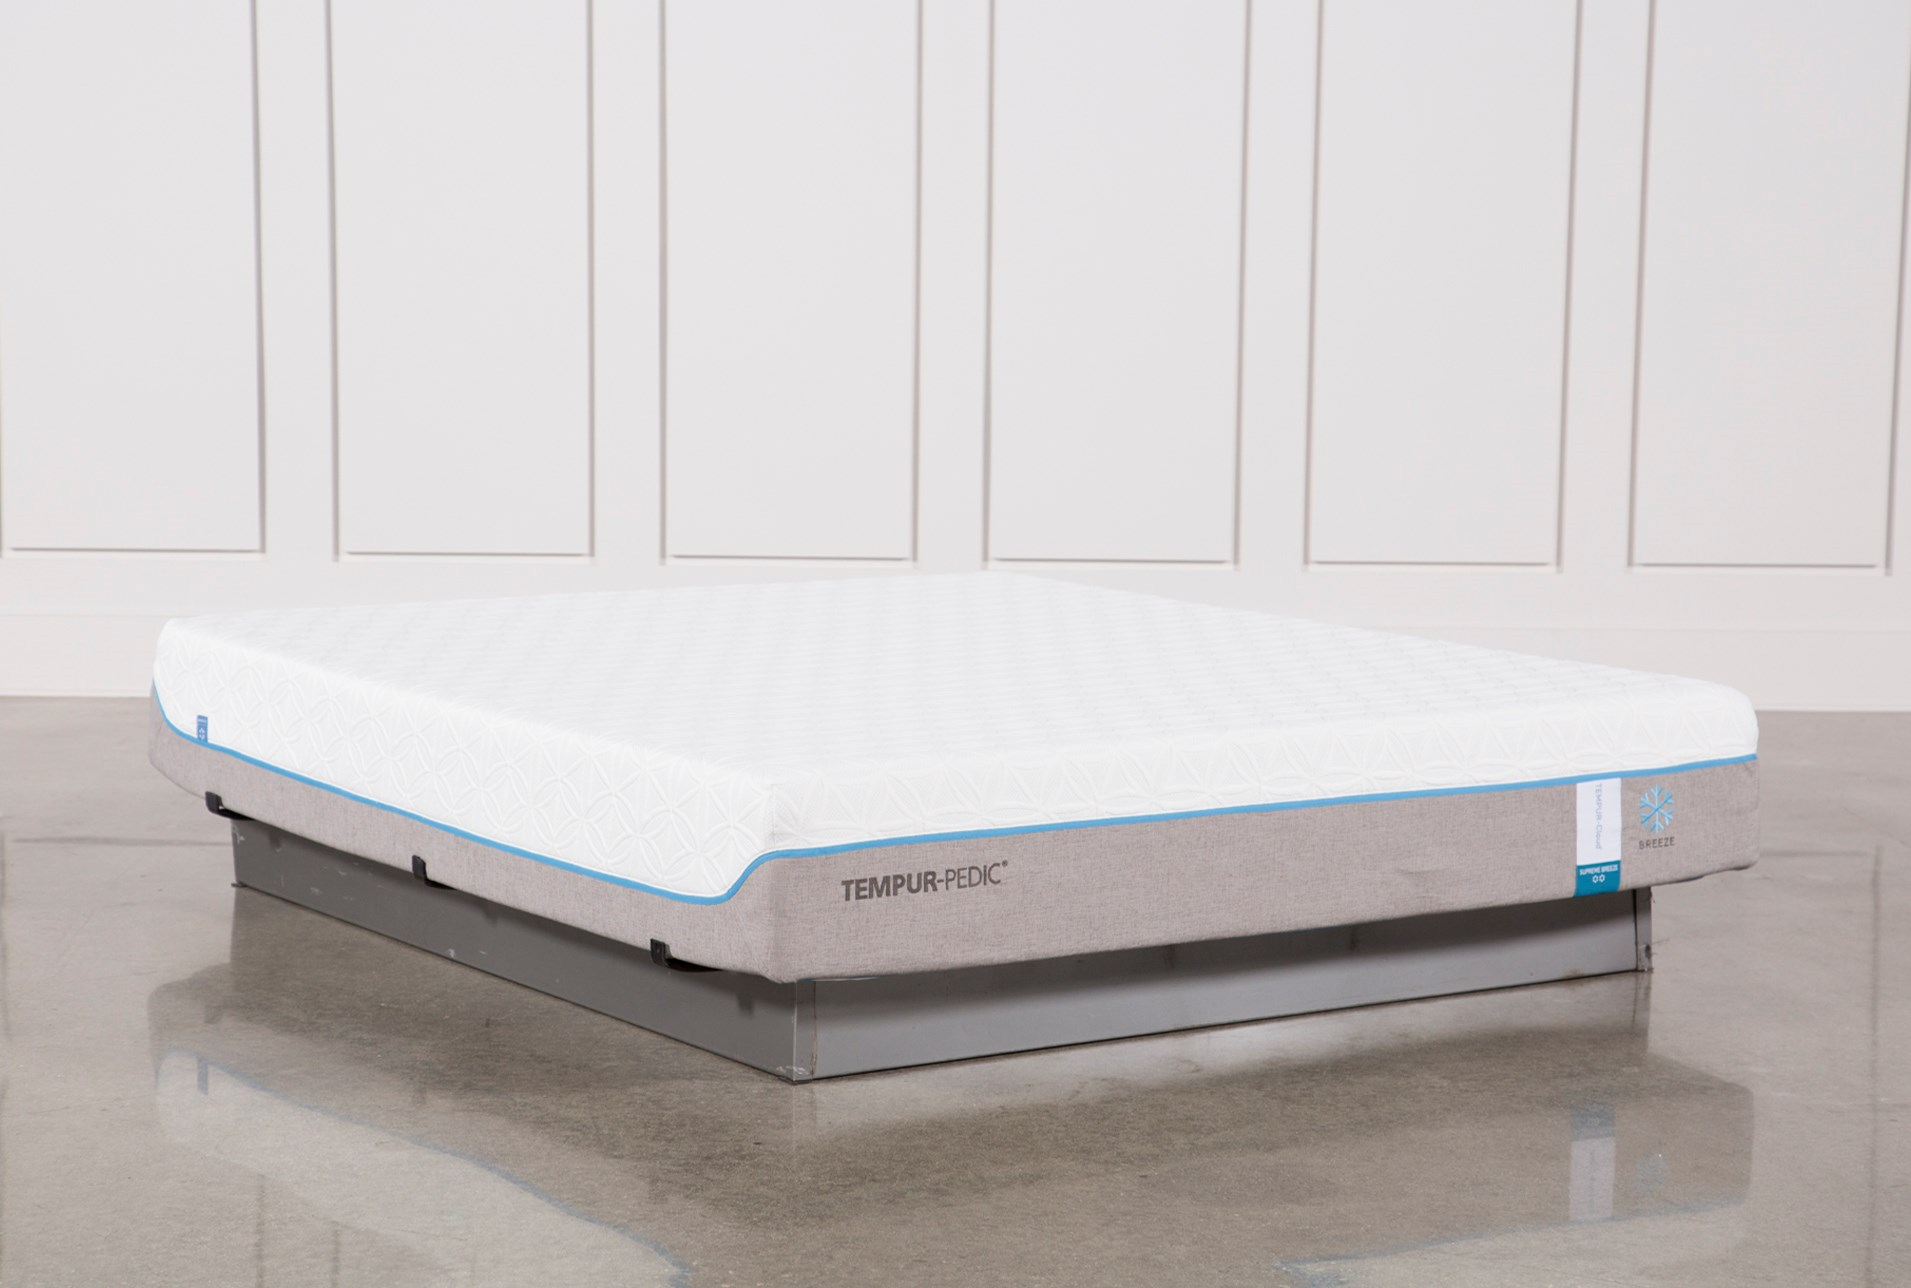 Tempur Pedic Cloud Supreme Breeze 20 Eastern King Mattress Qty 1 Has Been Successfully Added To Your Cart